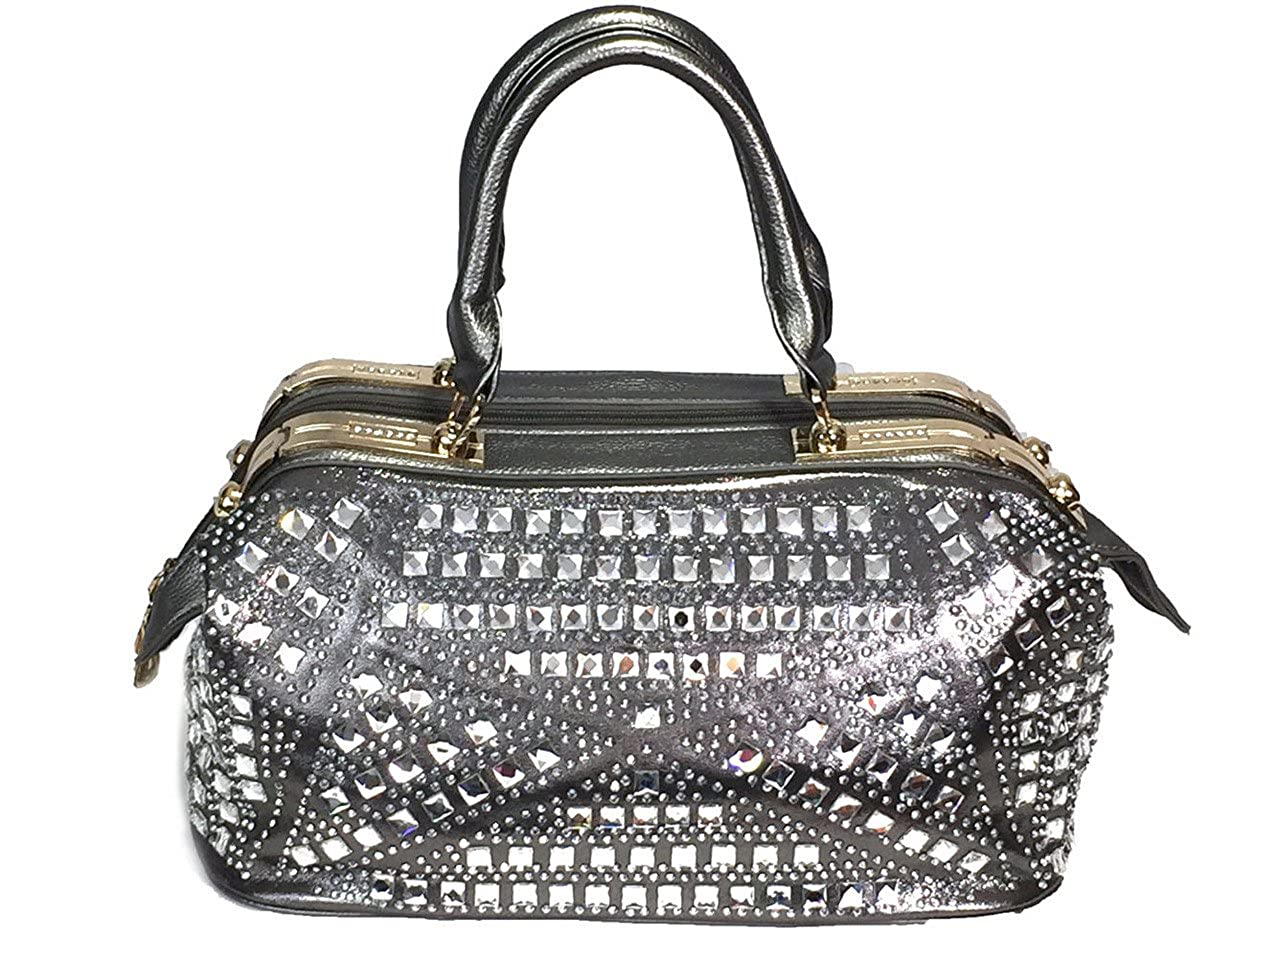 Zzfab Rhinestone Purse Gem Stone Doctor Bag Black at Amazon Women s Clothing  store  0a34a26bad84b